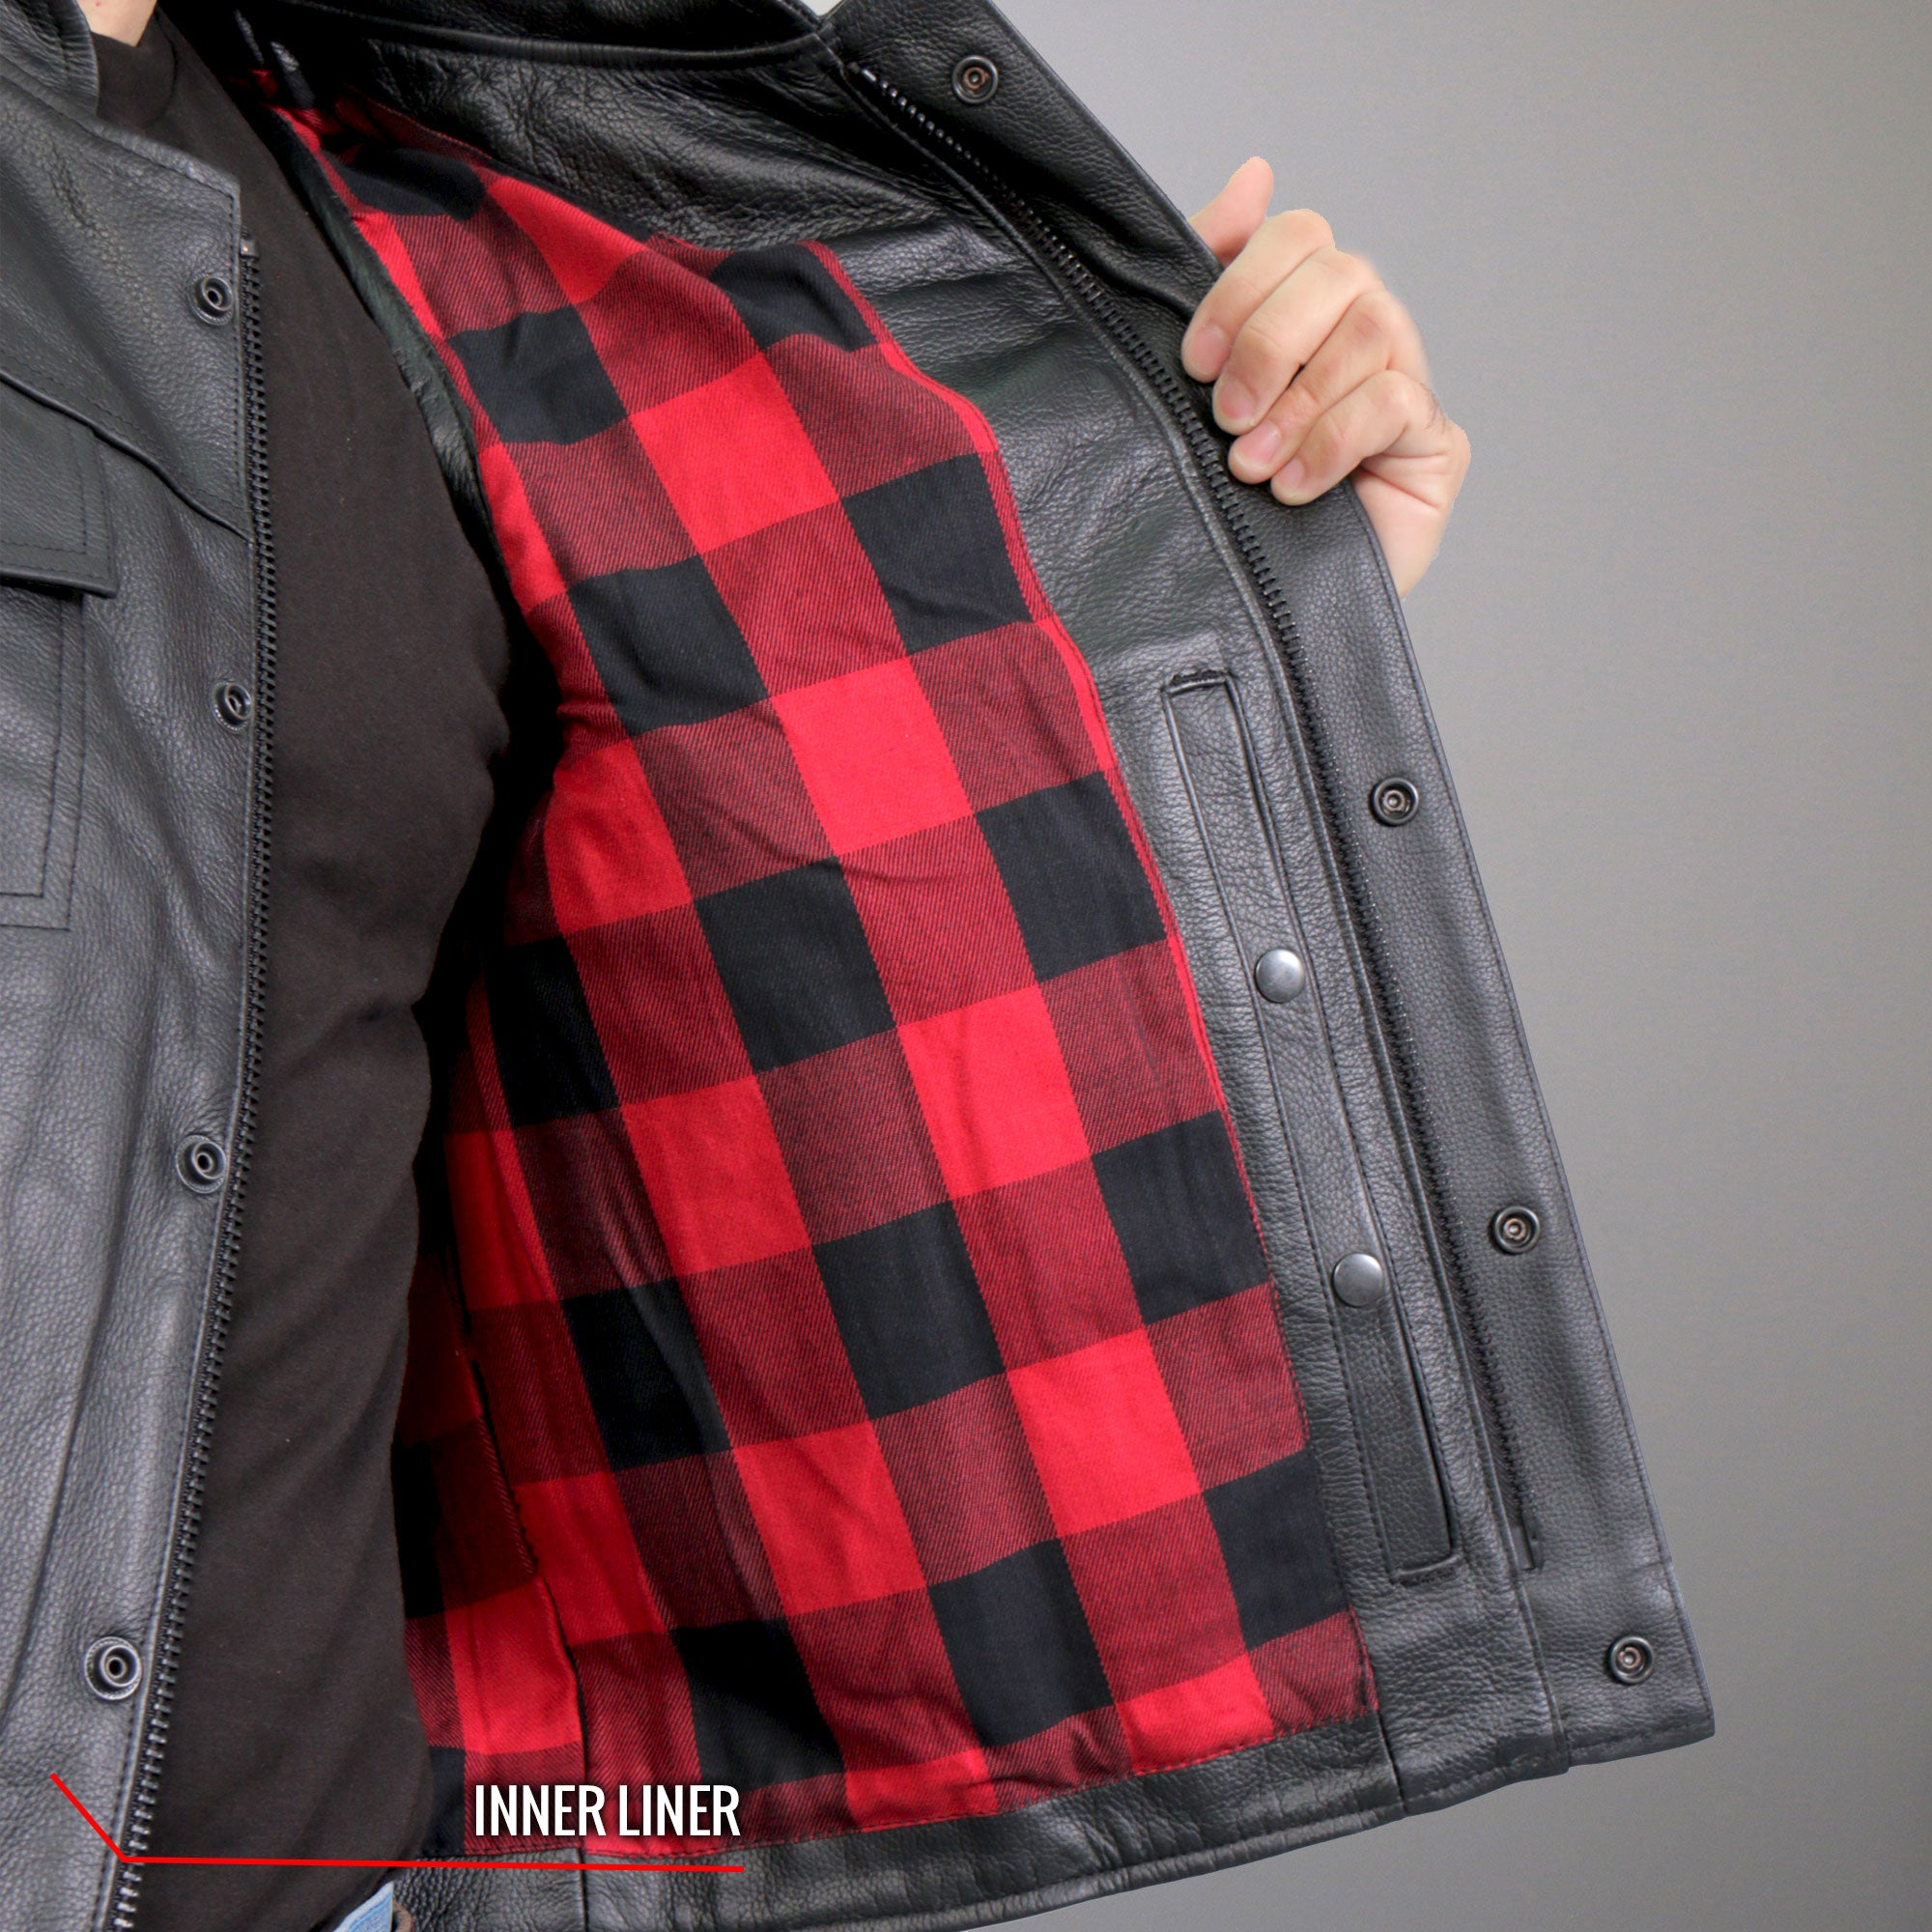 Hot Leathers Red Flannel Lined Leather Vest with Carry Conceal